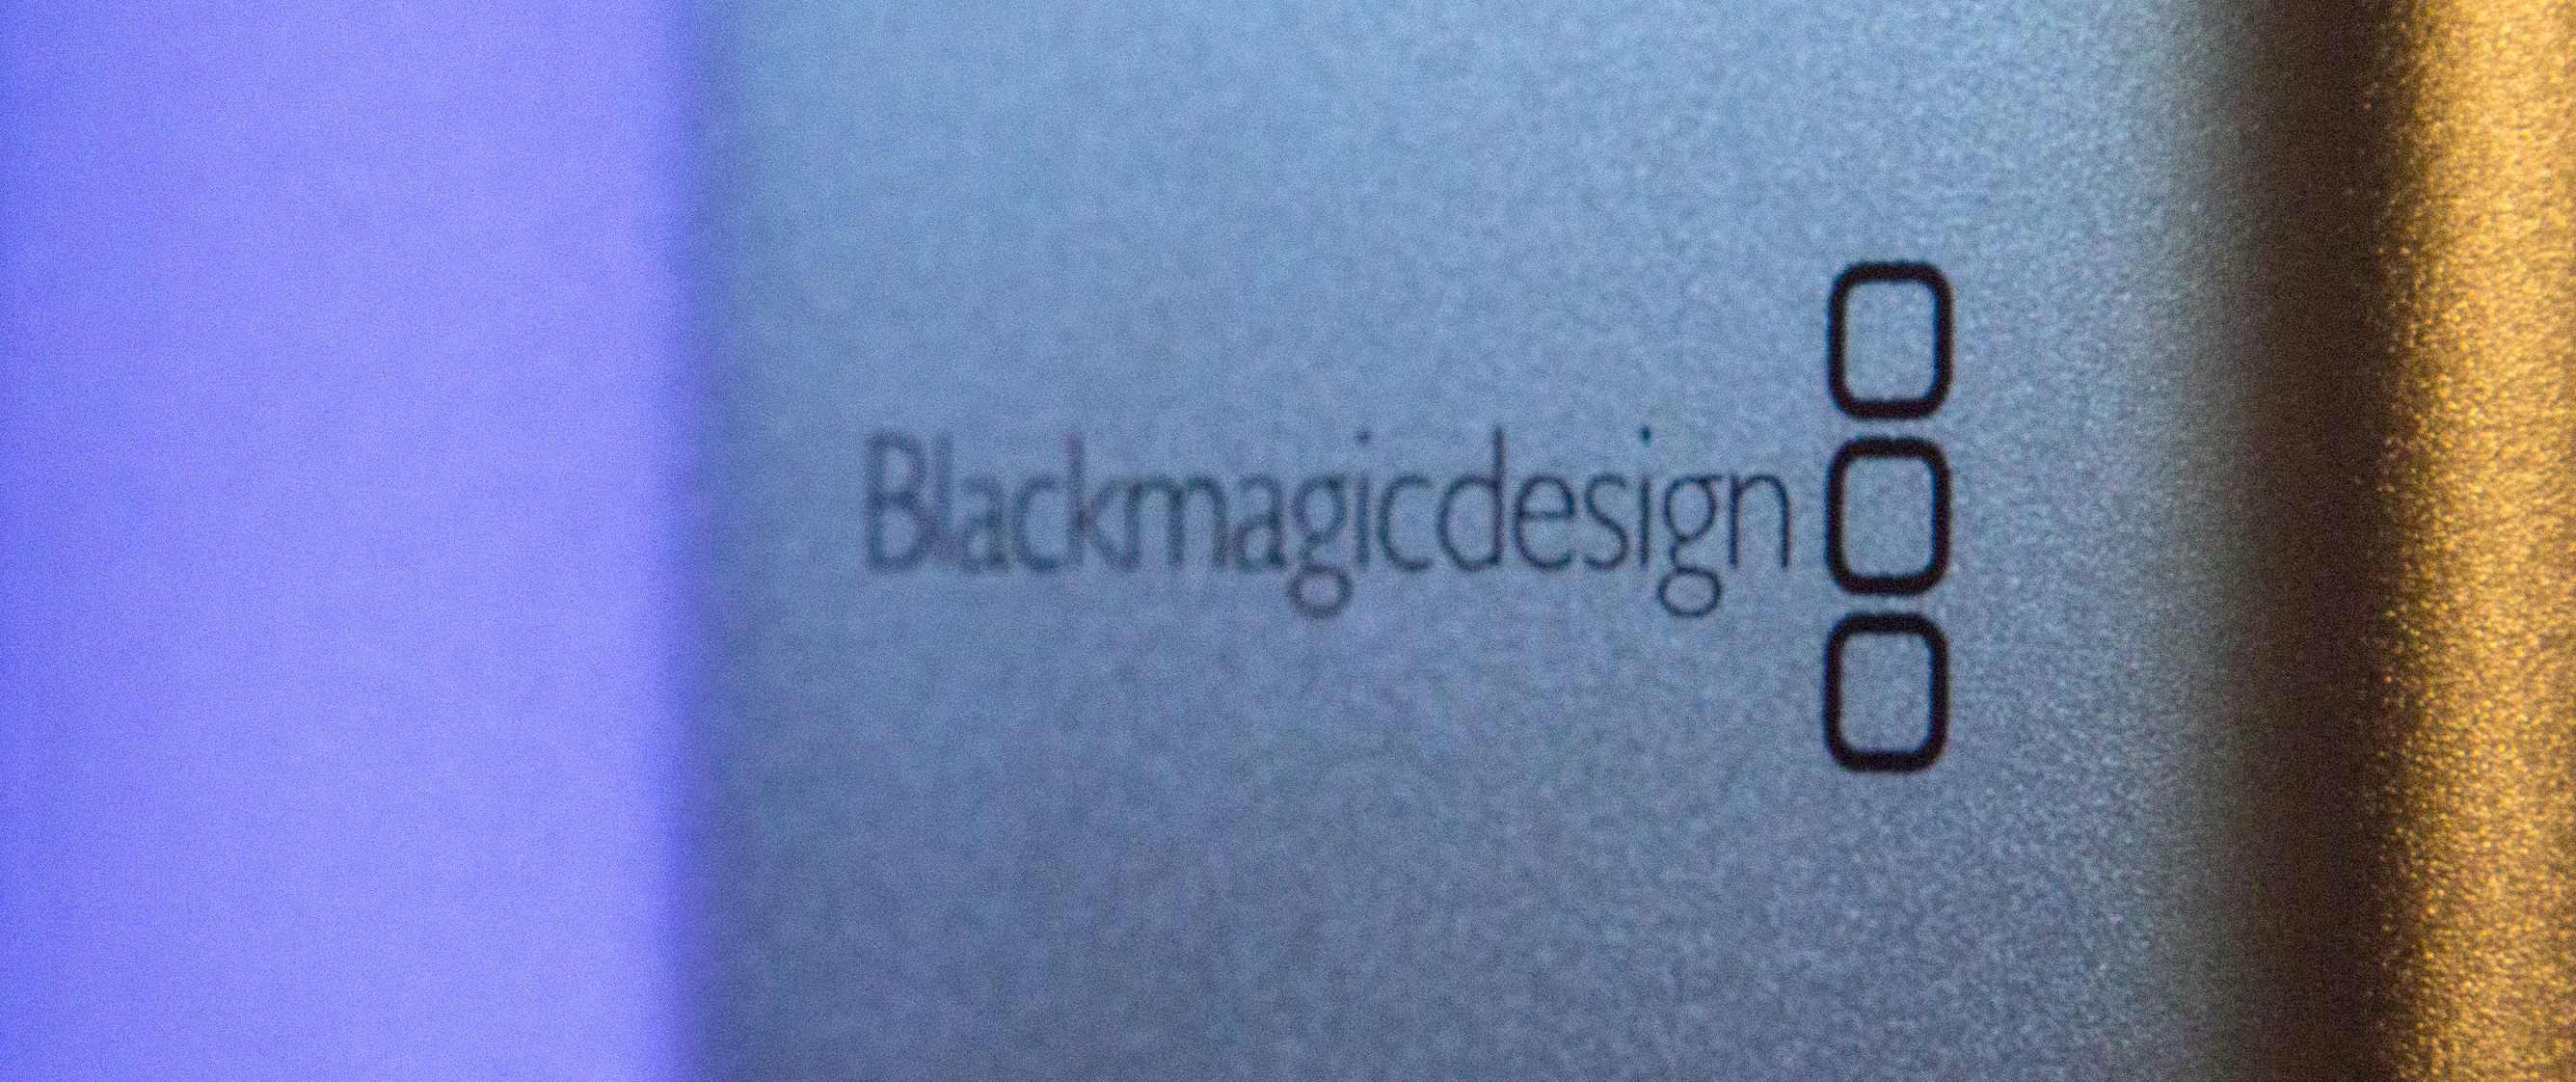 Blackmagic Design eGPU Shooter's Review by Brian Hallett